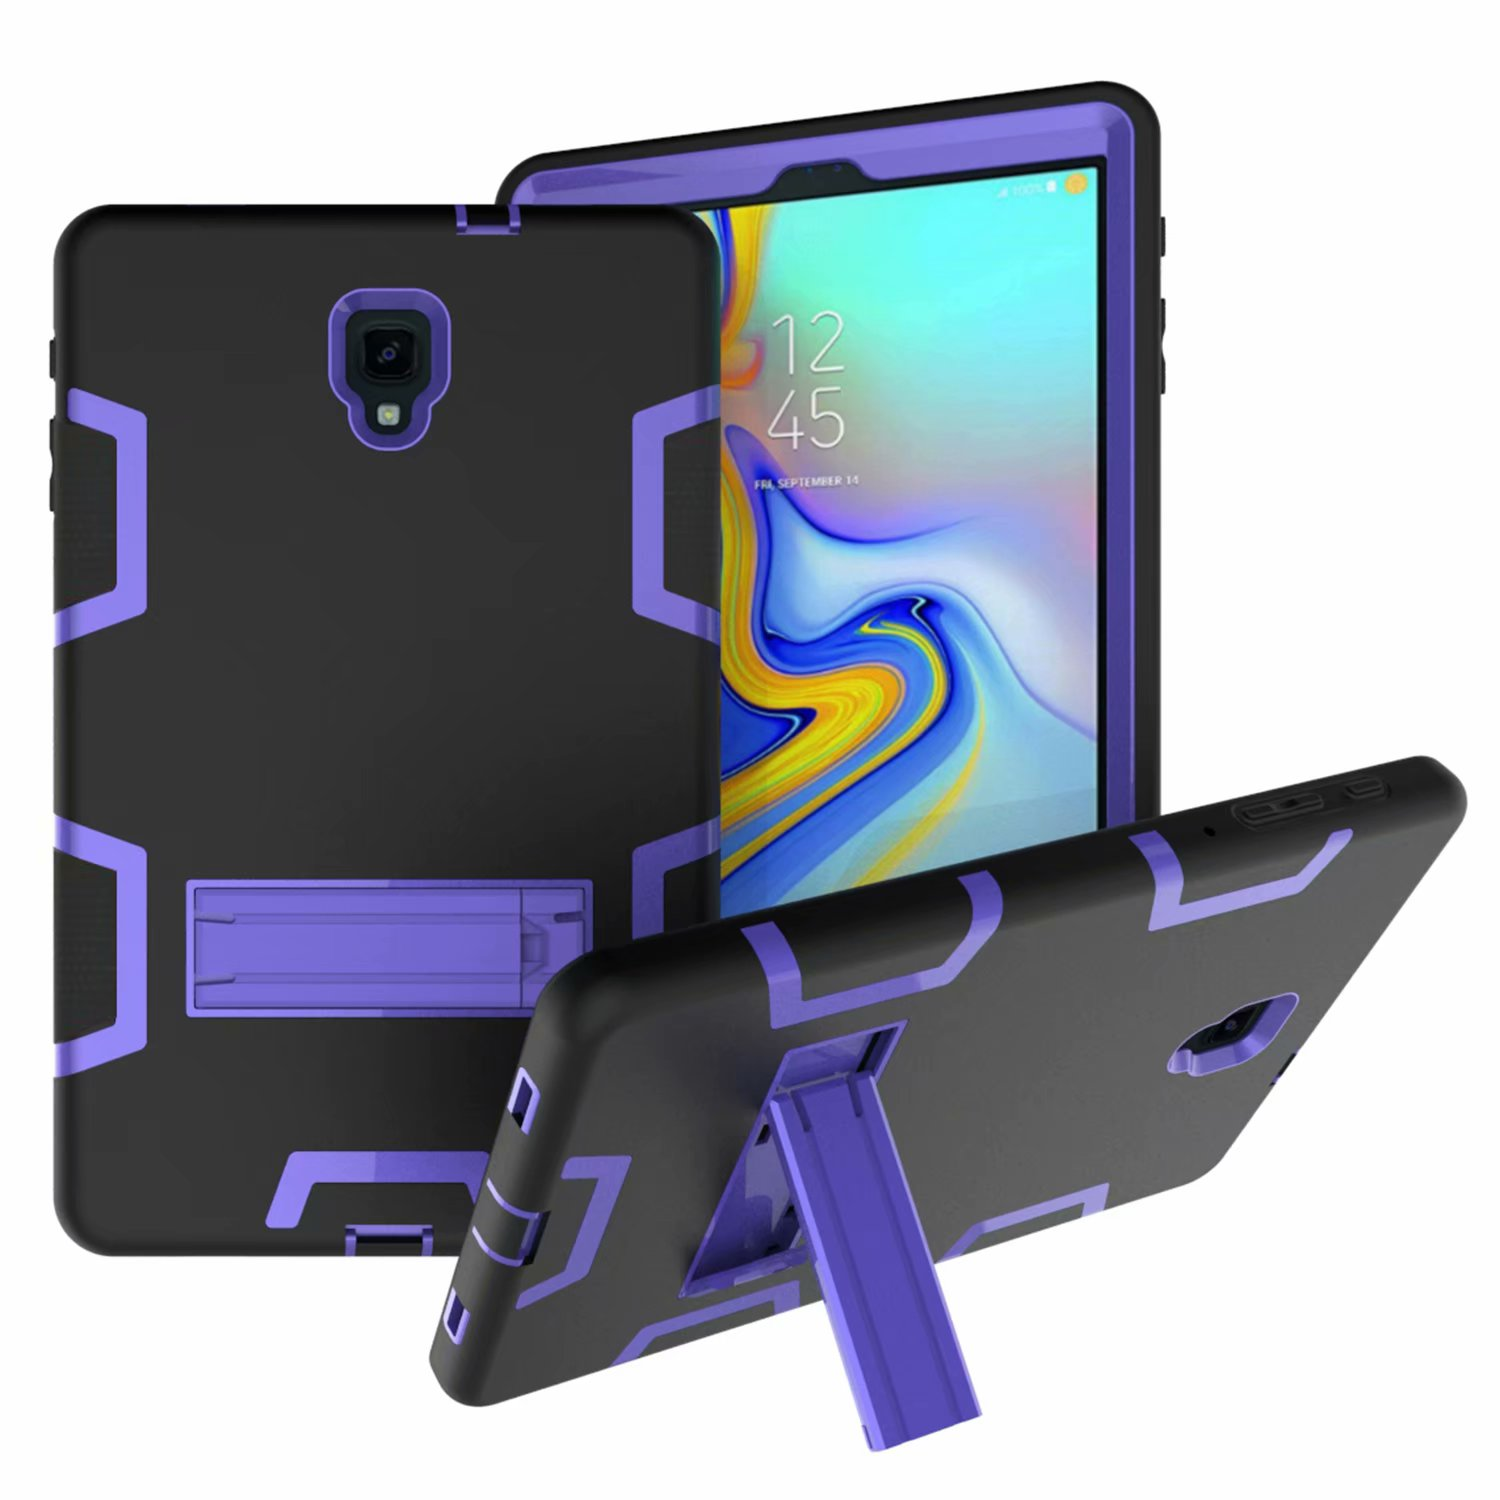 Galaxy Tab A 10.5 Case, Dteck Shockproof Three Layer Hybrid Rugged Heavy Duty Kickstand Anti-Slip Cover For Samsung Galaxy Tab A 10.5 Inch SM-T590 (2018 Release)